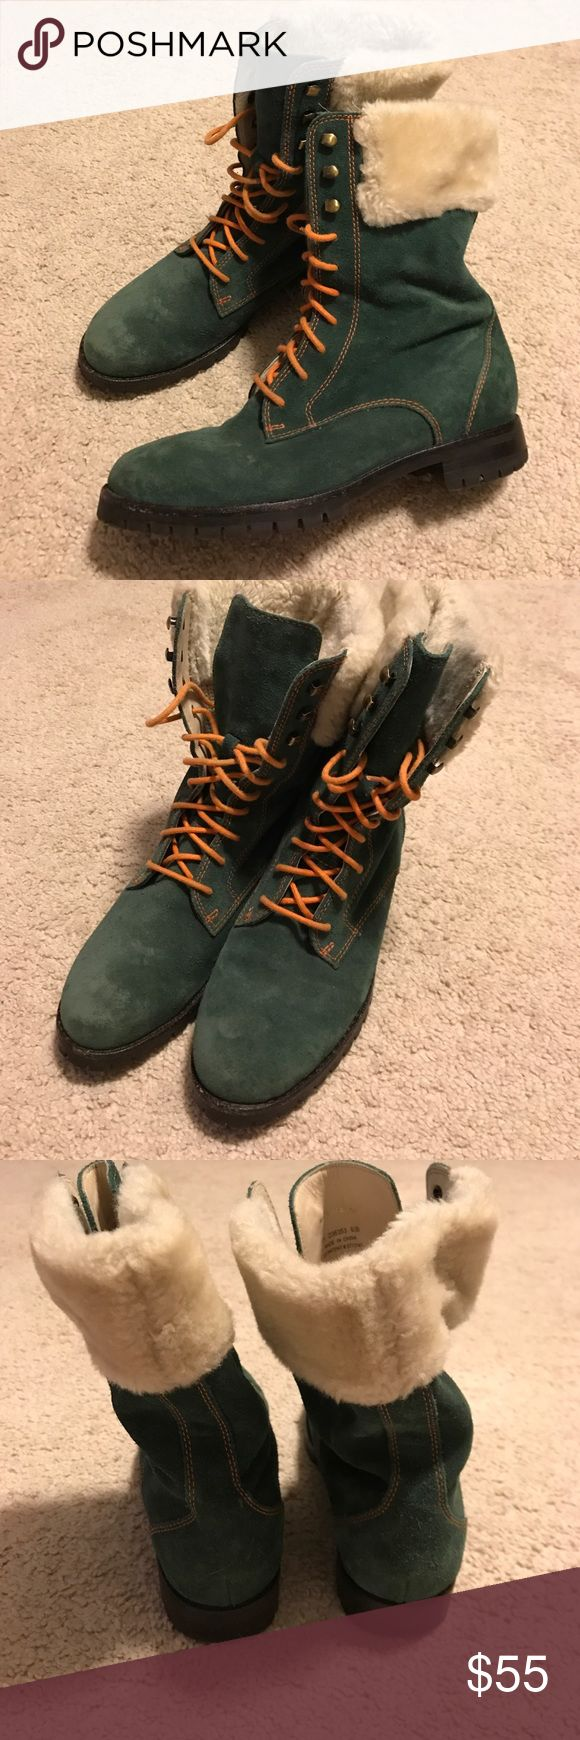 Cole Haan ladies leather boots 6.5 waterproof Super cute Cole Haan leather boots waterproof with Nike Air soles Cole Haan Shoes Lace Up Boots